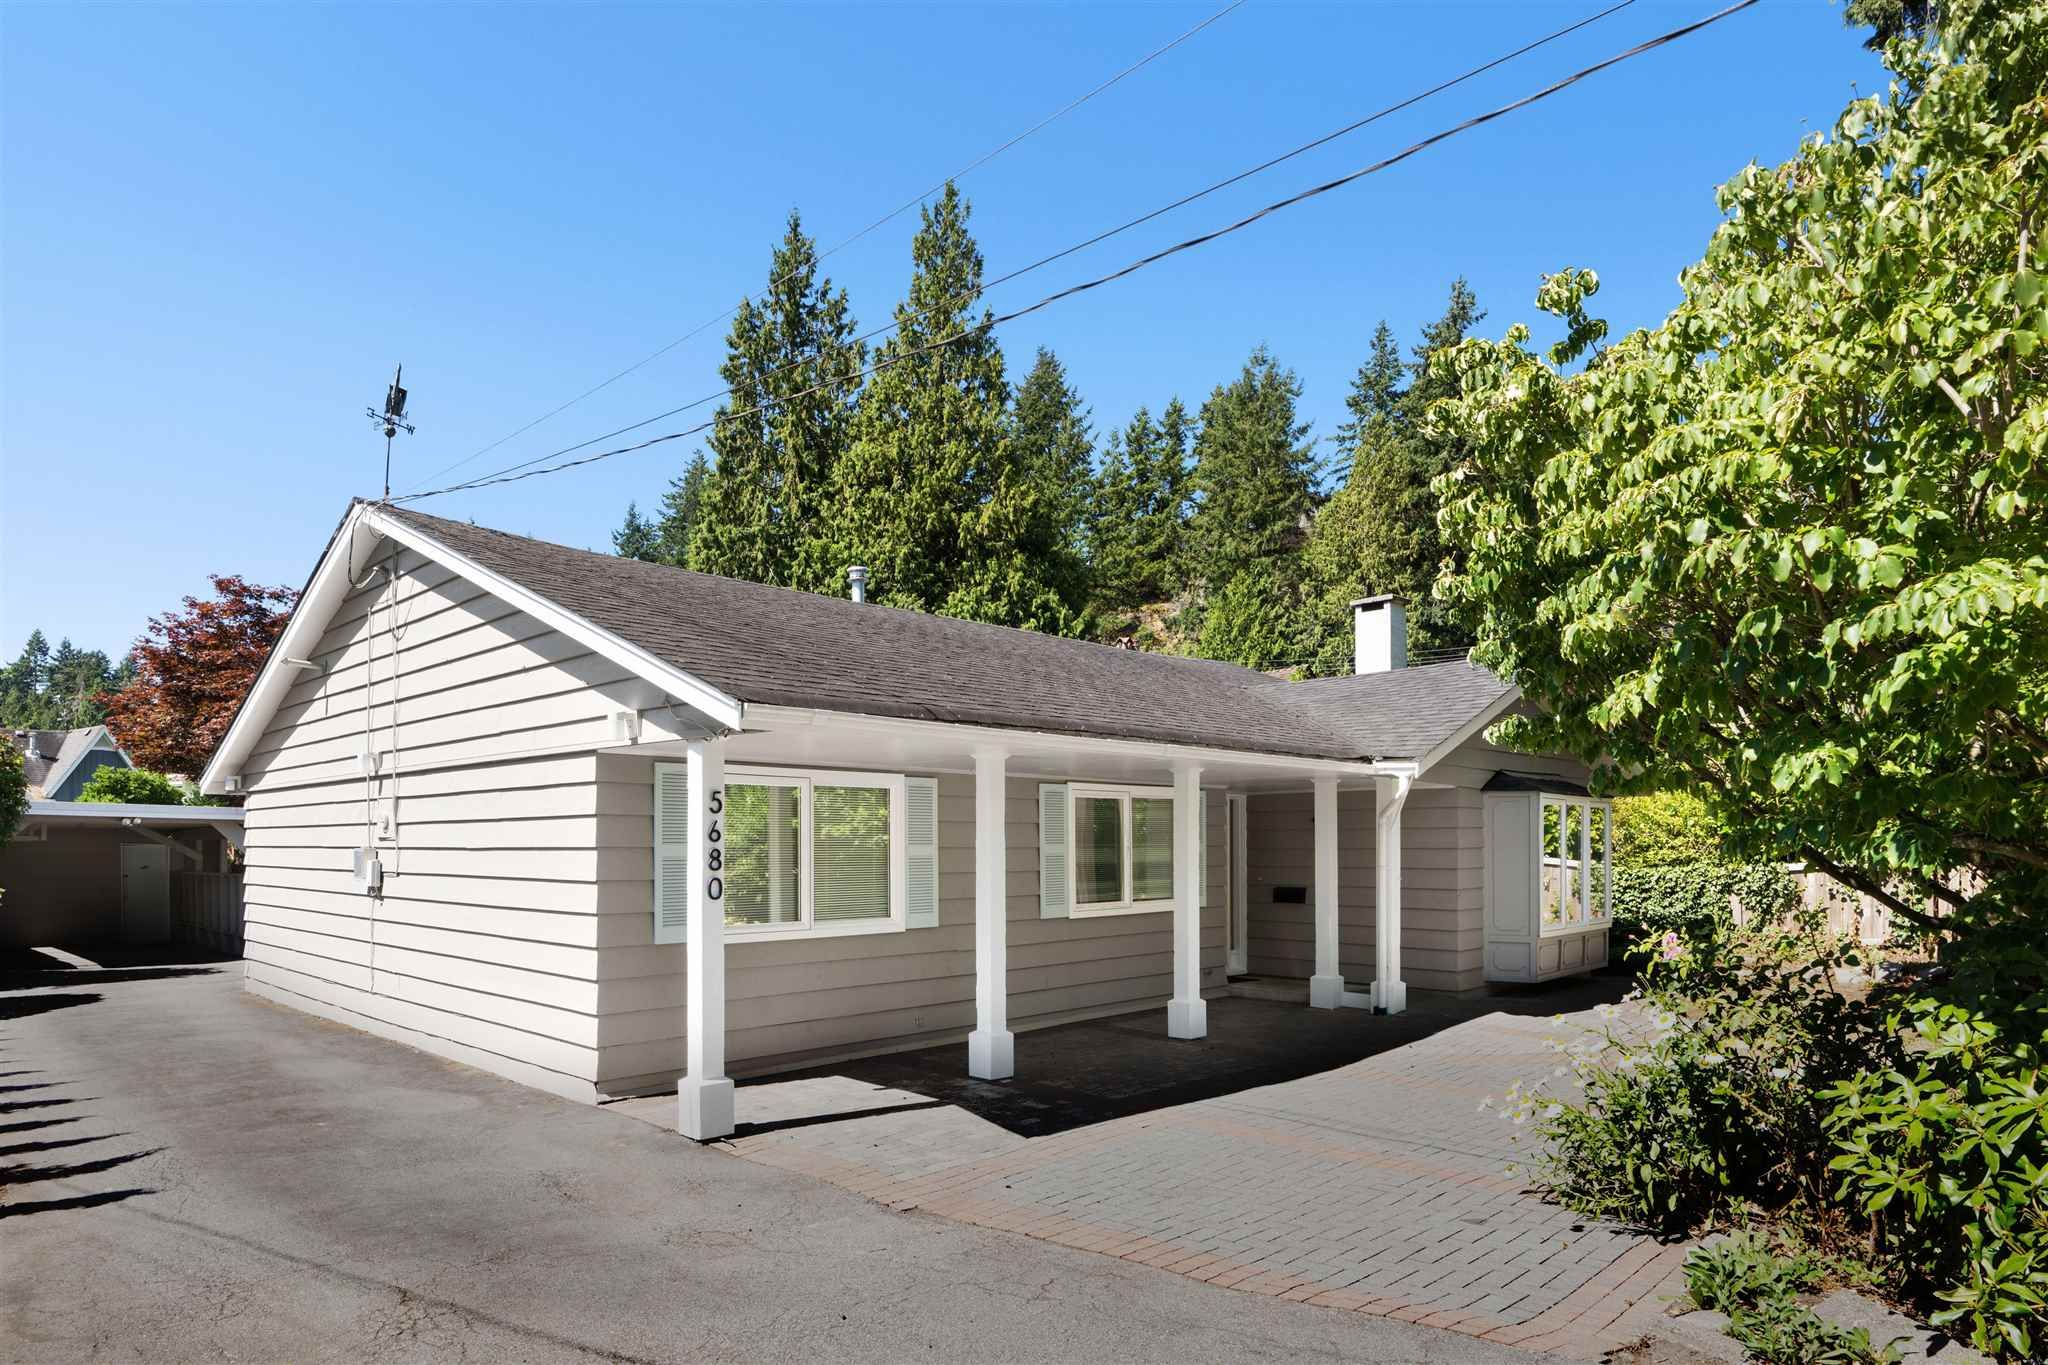 """Main Photo: 5680 MARINE Drive in West Vancouver: Eagle Harbour House for sale in """"EAGLE HARBOUR"""" : MLS®# R2604573"""